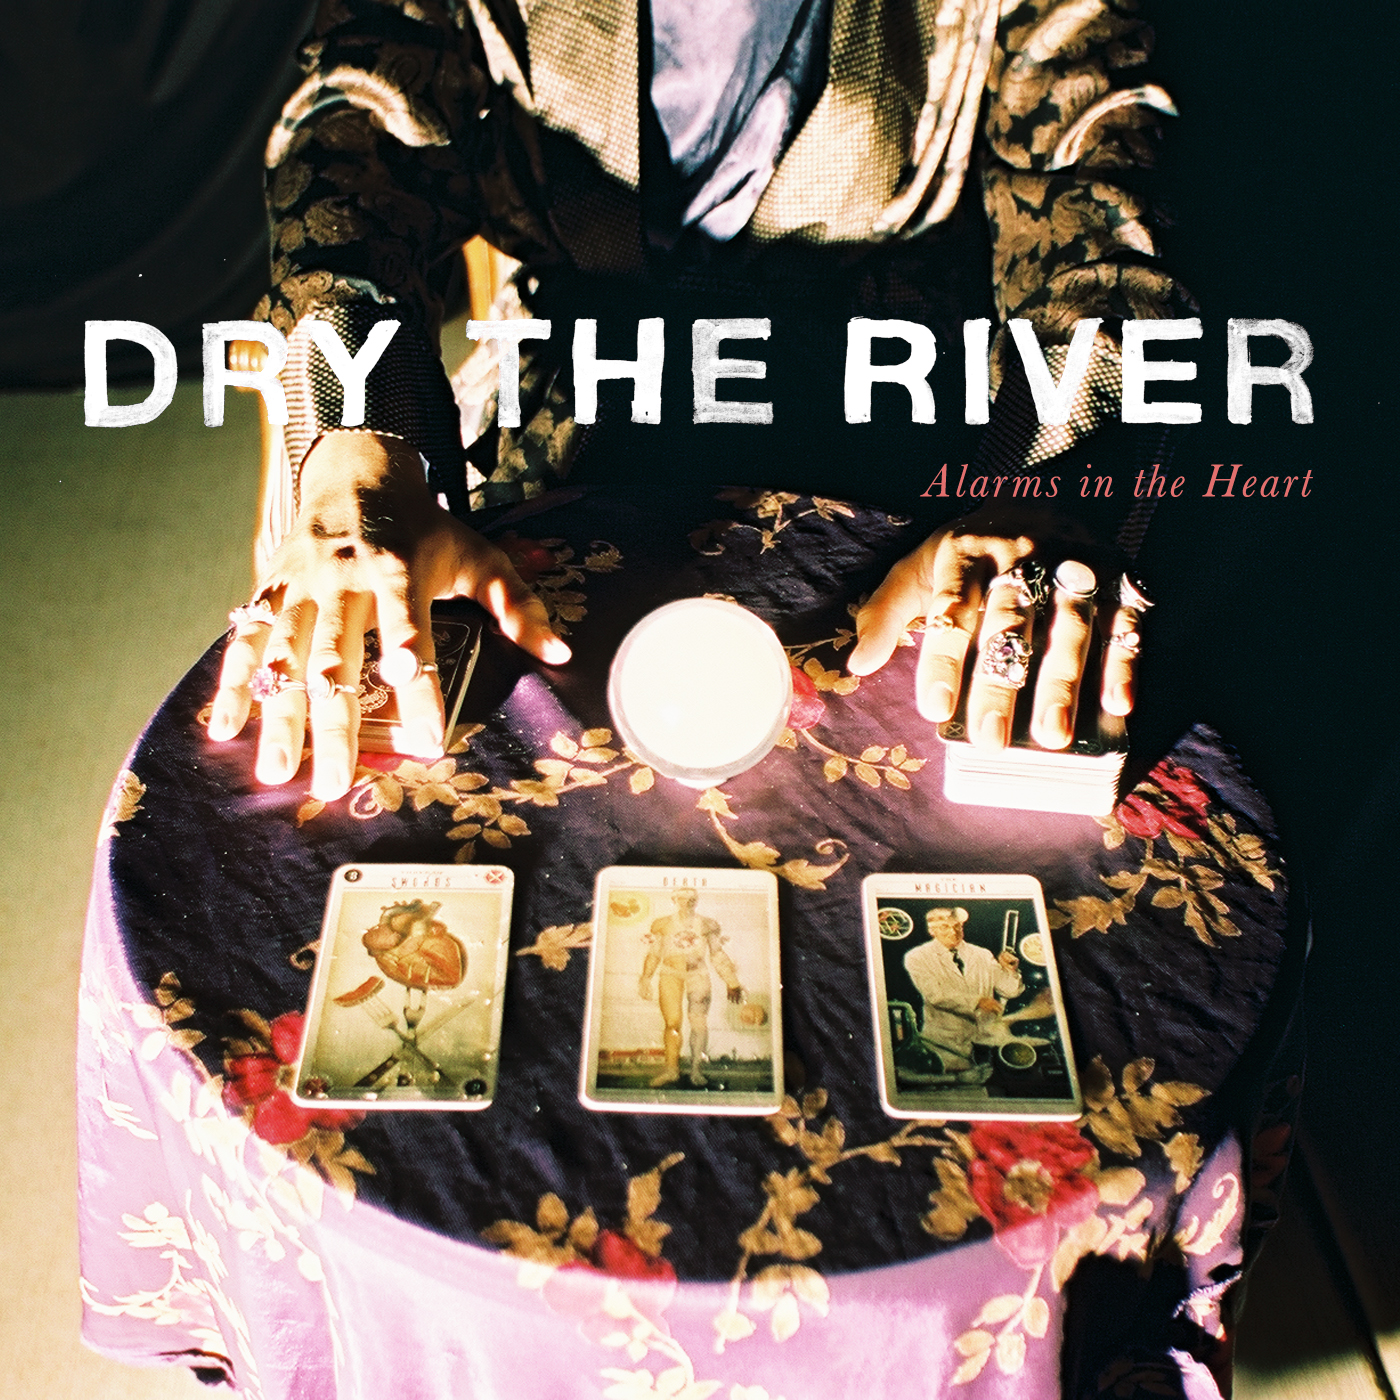 """Dry the River - """"Alarms In The Heart"""" LP - Dry the River"""